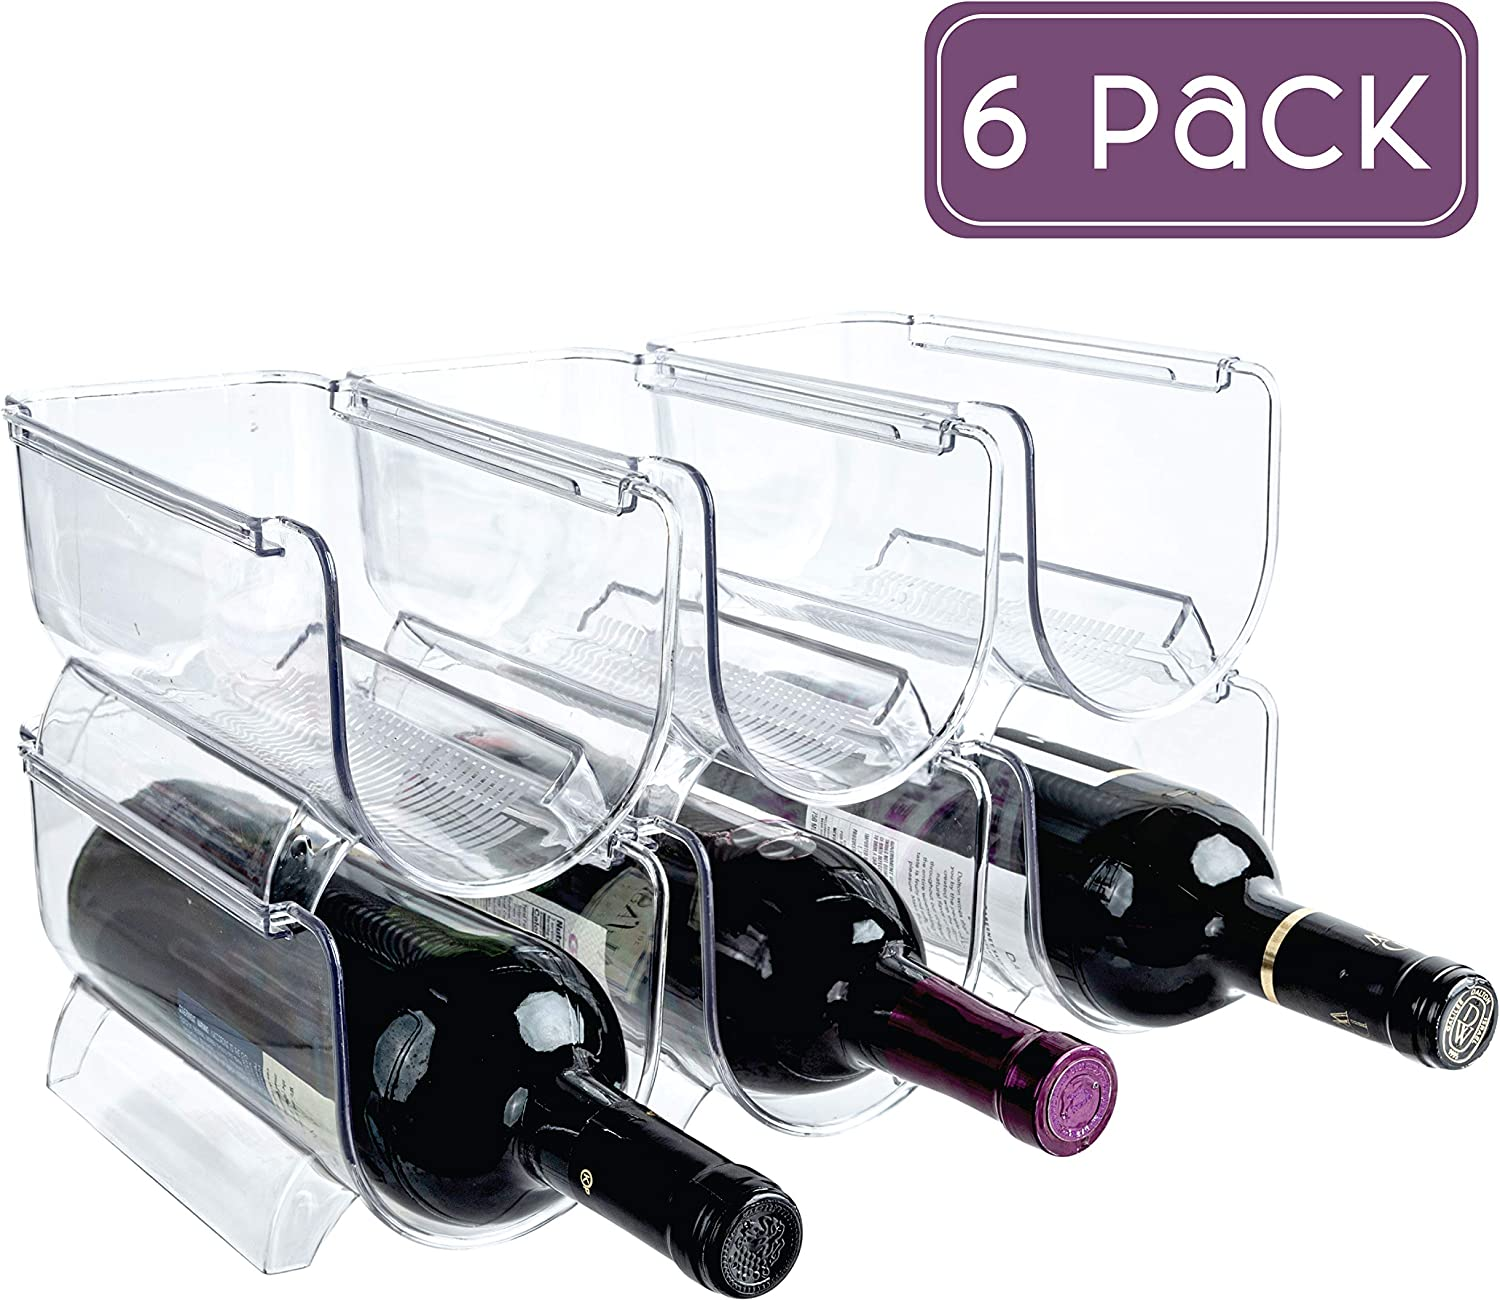 Homeries Wine & Water Bottle Organizer Holder (Set of 6) Stackable Wine Rack for Kitchen Countertops, Table Top, Pantry, Fridge, Bars – Acrylic, Free Standing Wine Shelf – Holds Beer, Pop, Soda & Cans